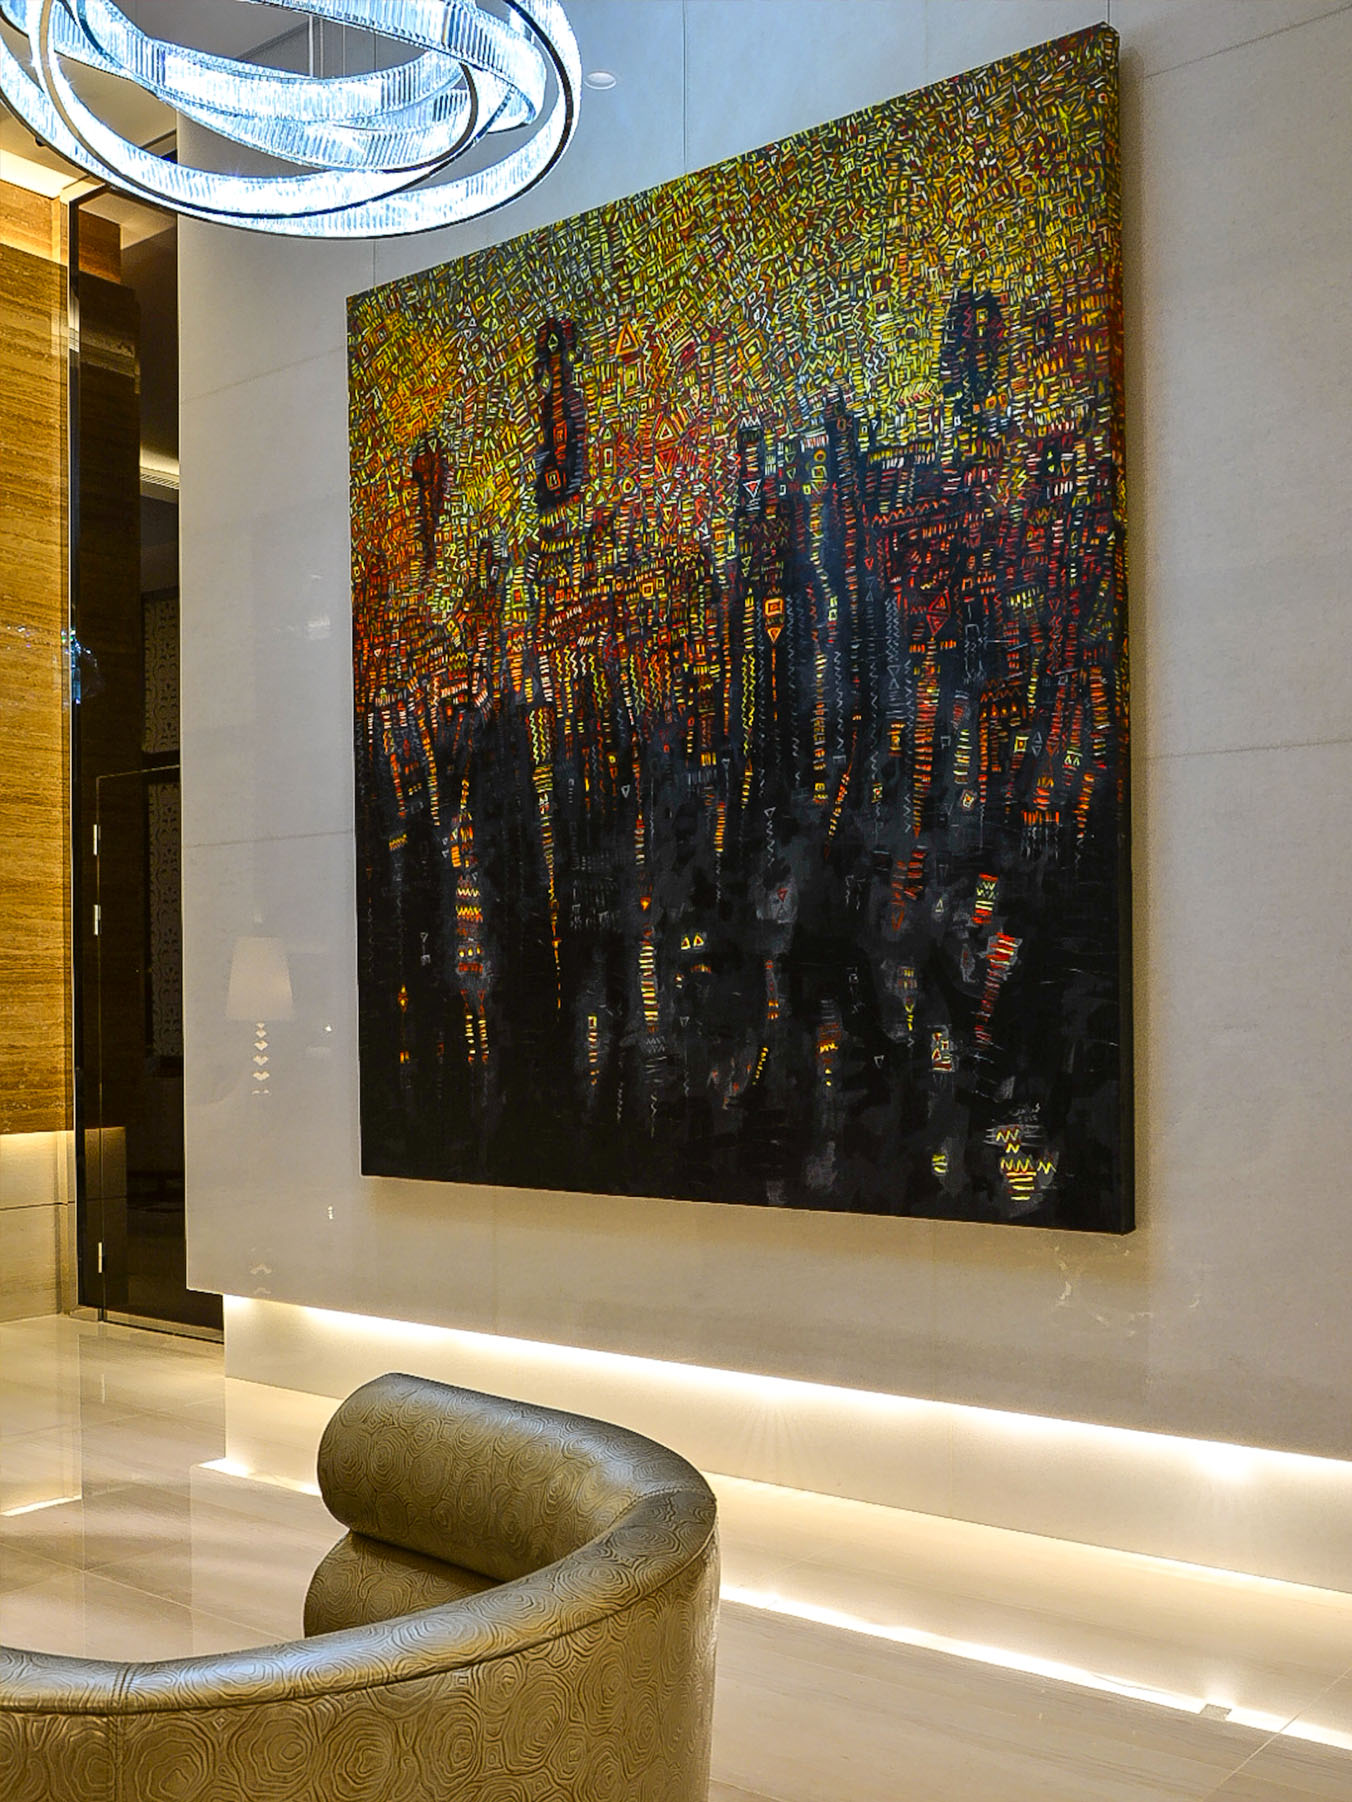 02-capsule-arts-projects-arabic-gallery-kempinski-hotel-paintint-01.jpg